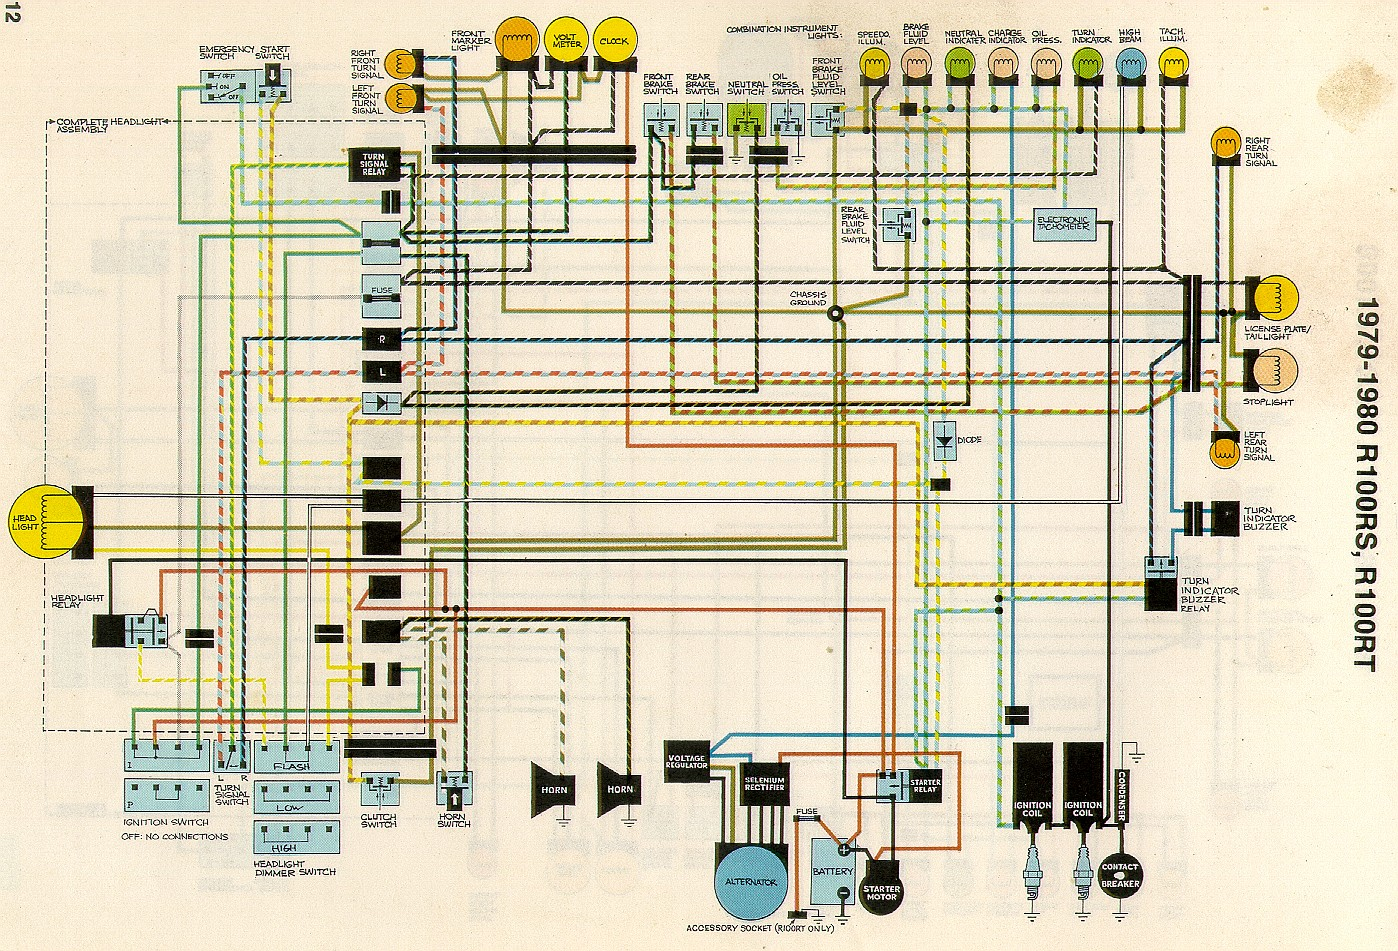 79rs 5 united articles wiring diagrams bmw r100rs gauge wiring diagram at aneh.co